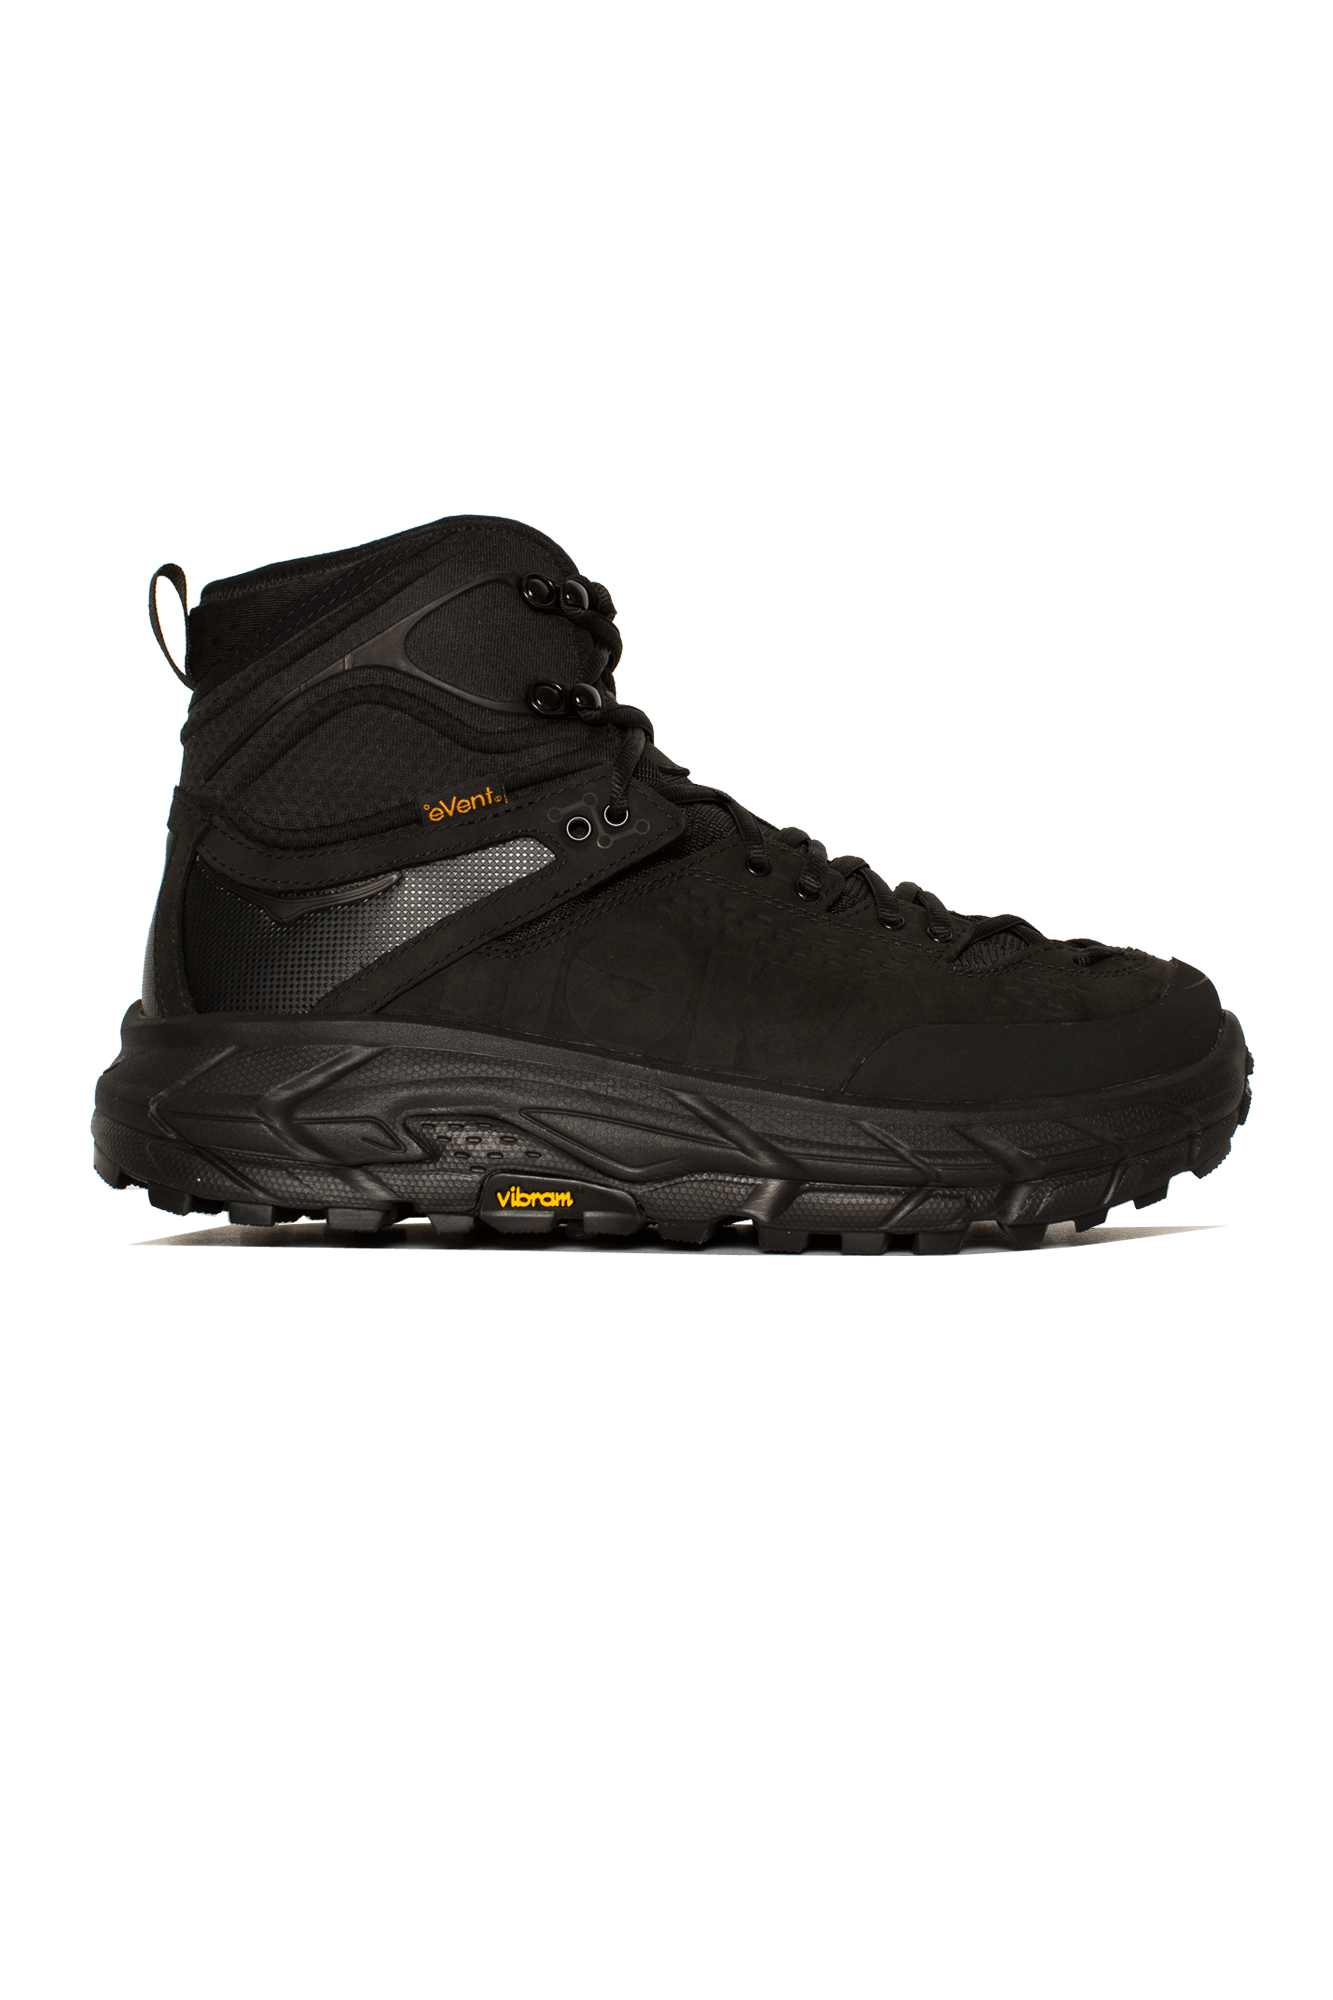 Hoka One One Sneakers Tor Ultra Hi 2 WP Black HK.1107293#000#BLK#7 - One Block Down